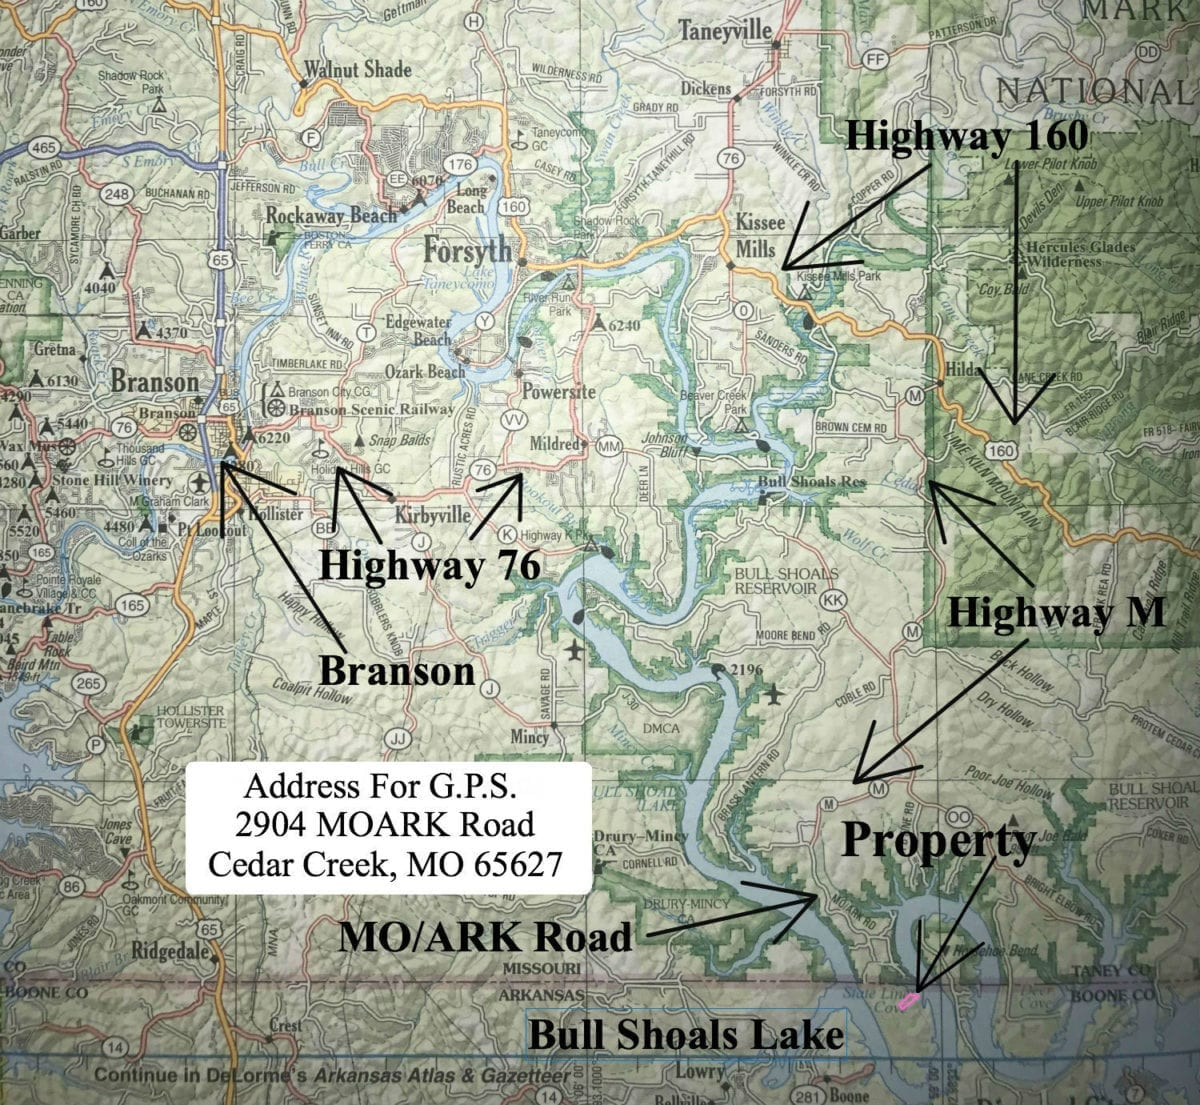 Road map to the property from Branson, MO.